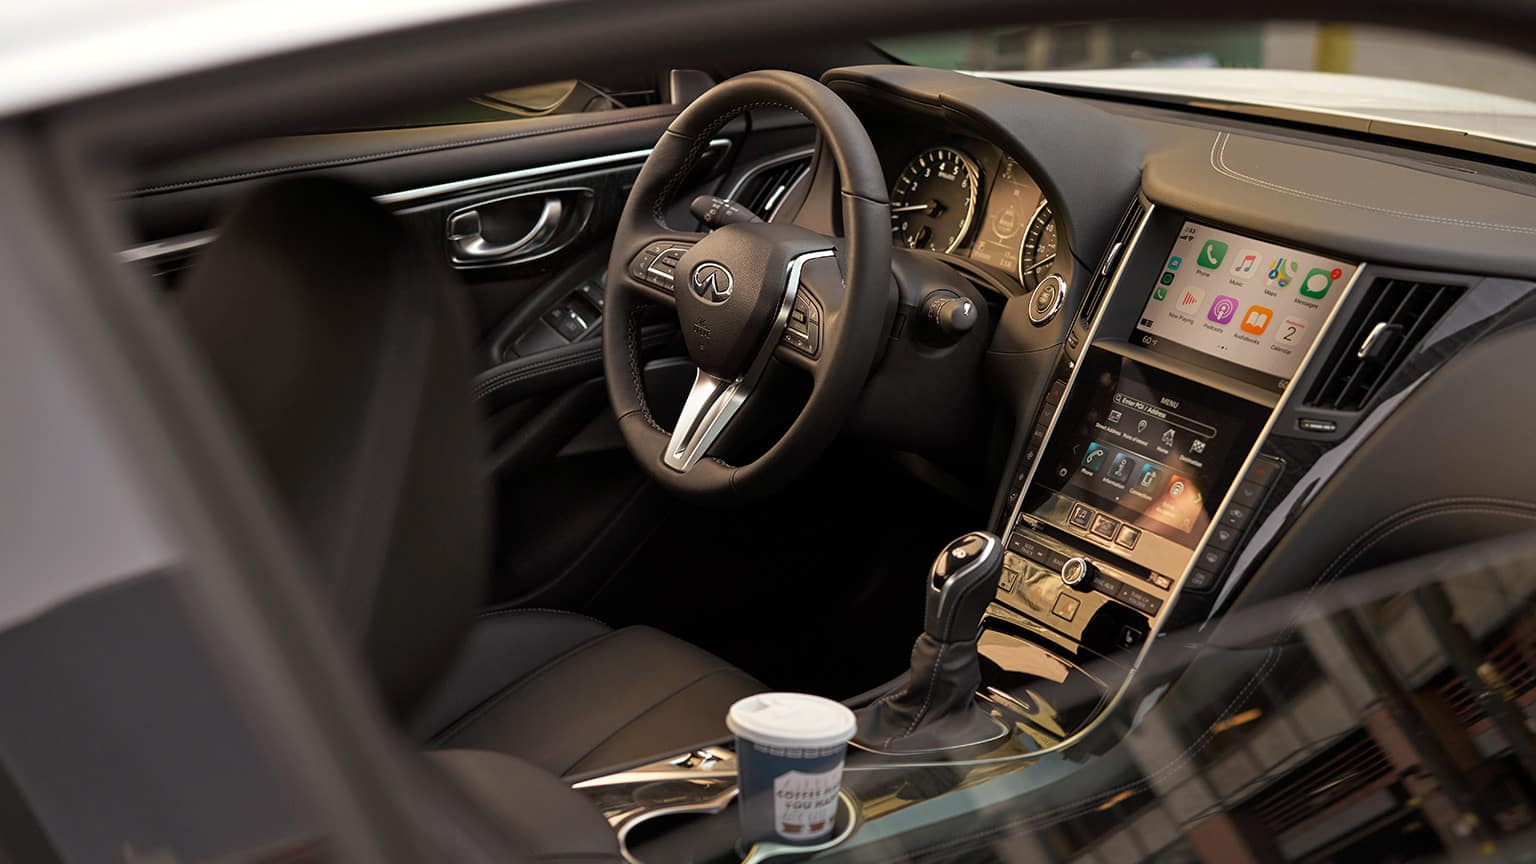 Interior view of the 2020 Q60